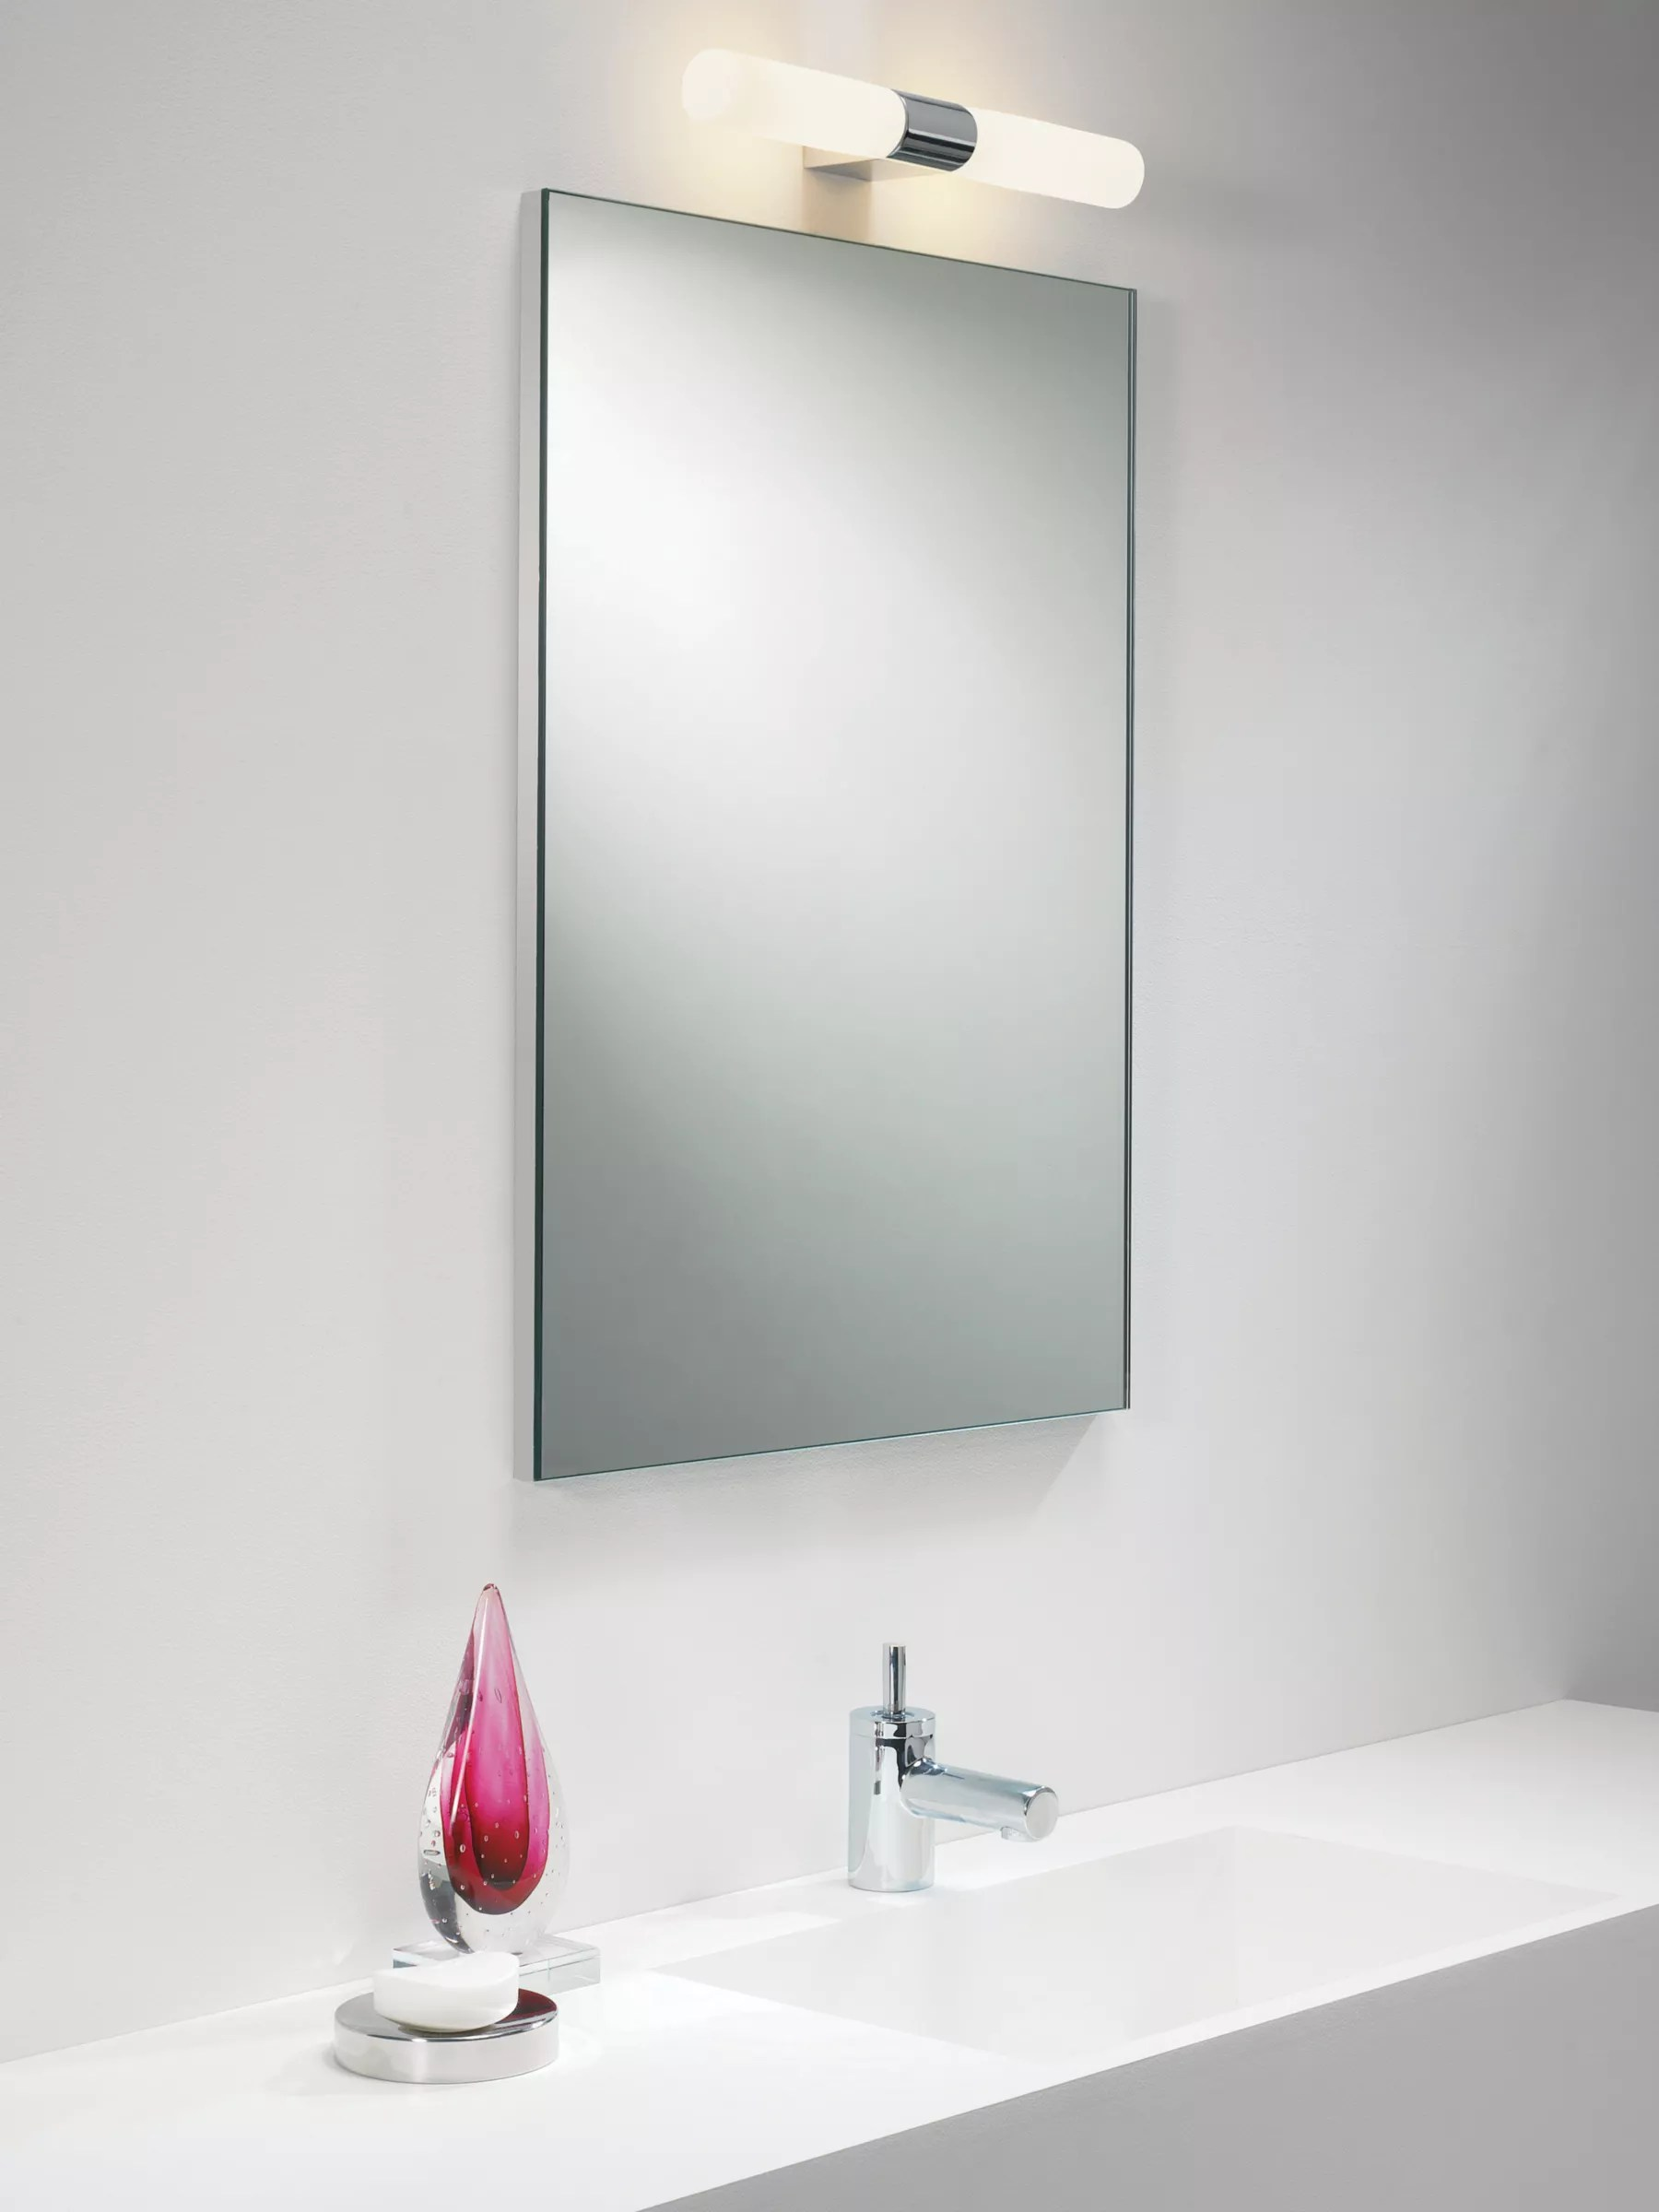 Light Bathroom Mirror Astro Padova Over Mirror Bathroom Light At John Lewis Partners